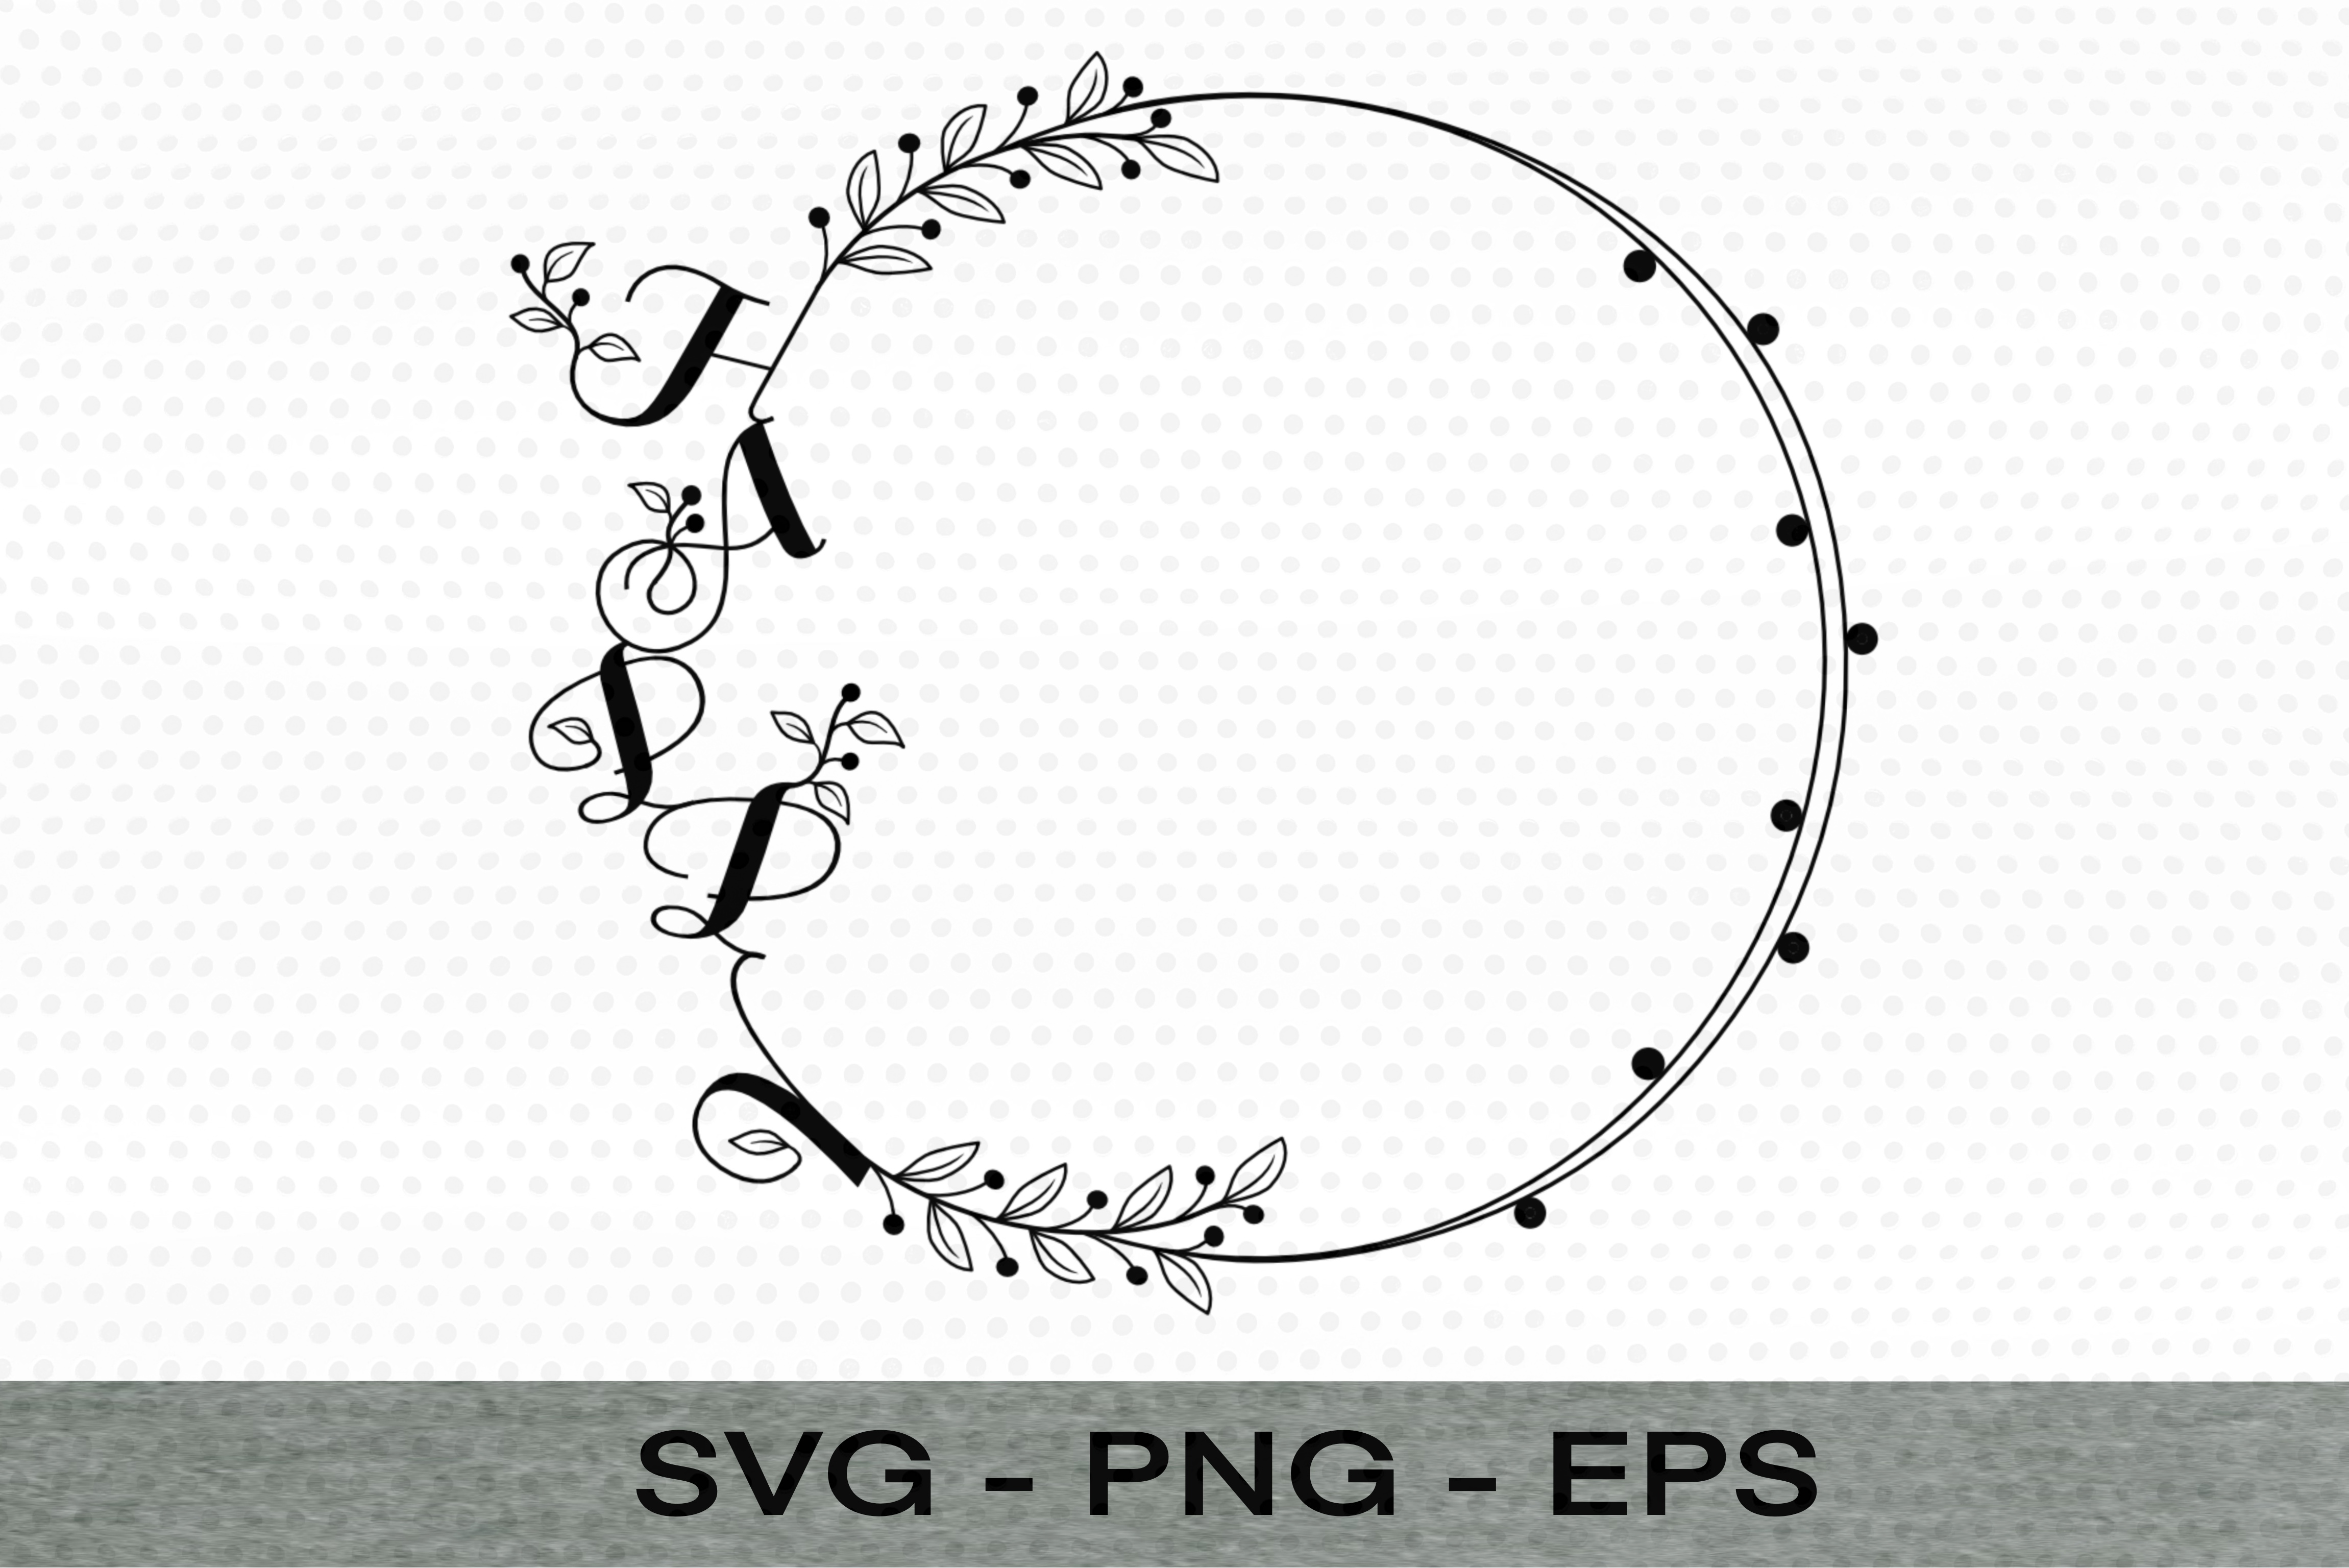 Free Svg Christmas Wreath Free Svg Cut Files Create Your Diy Projects Using Your Cricut Explore Silhouette And More The Free Cut Files Include Svg Dxf Eps And Png Files